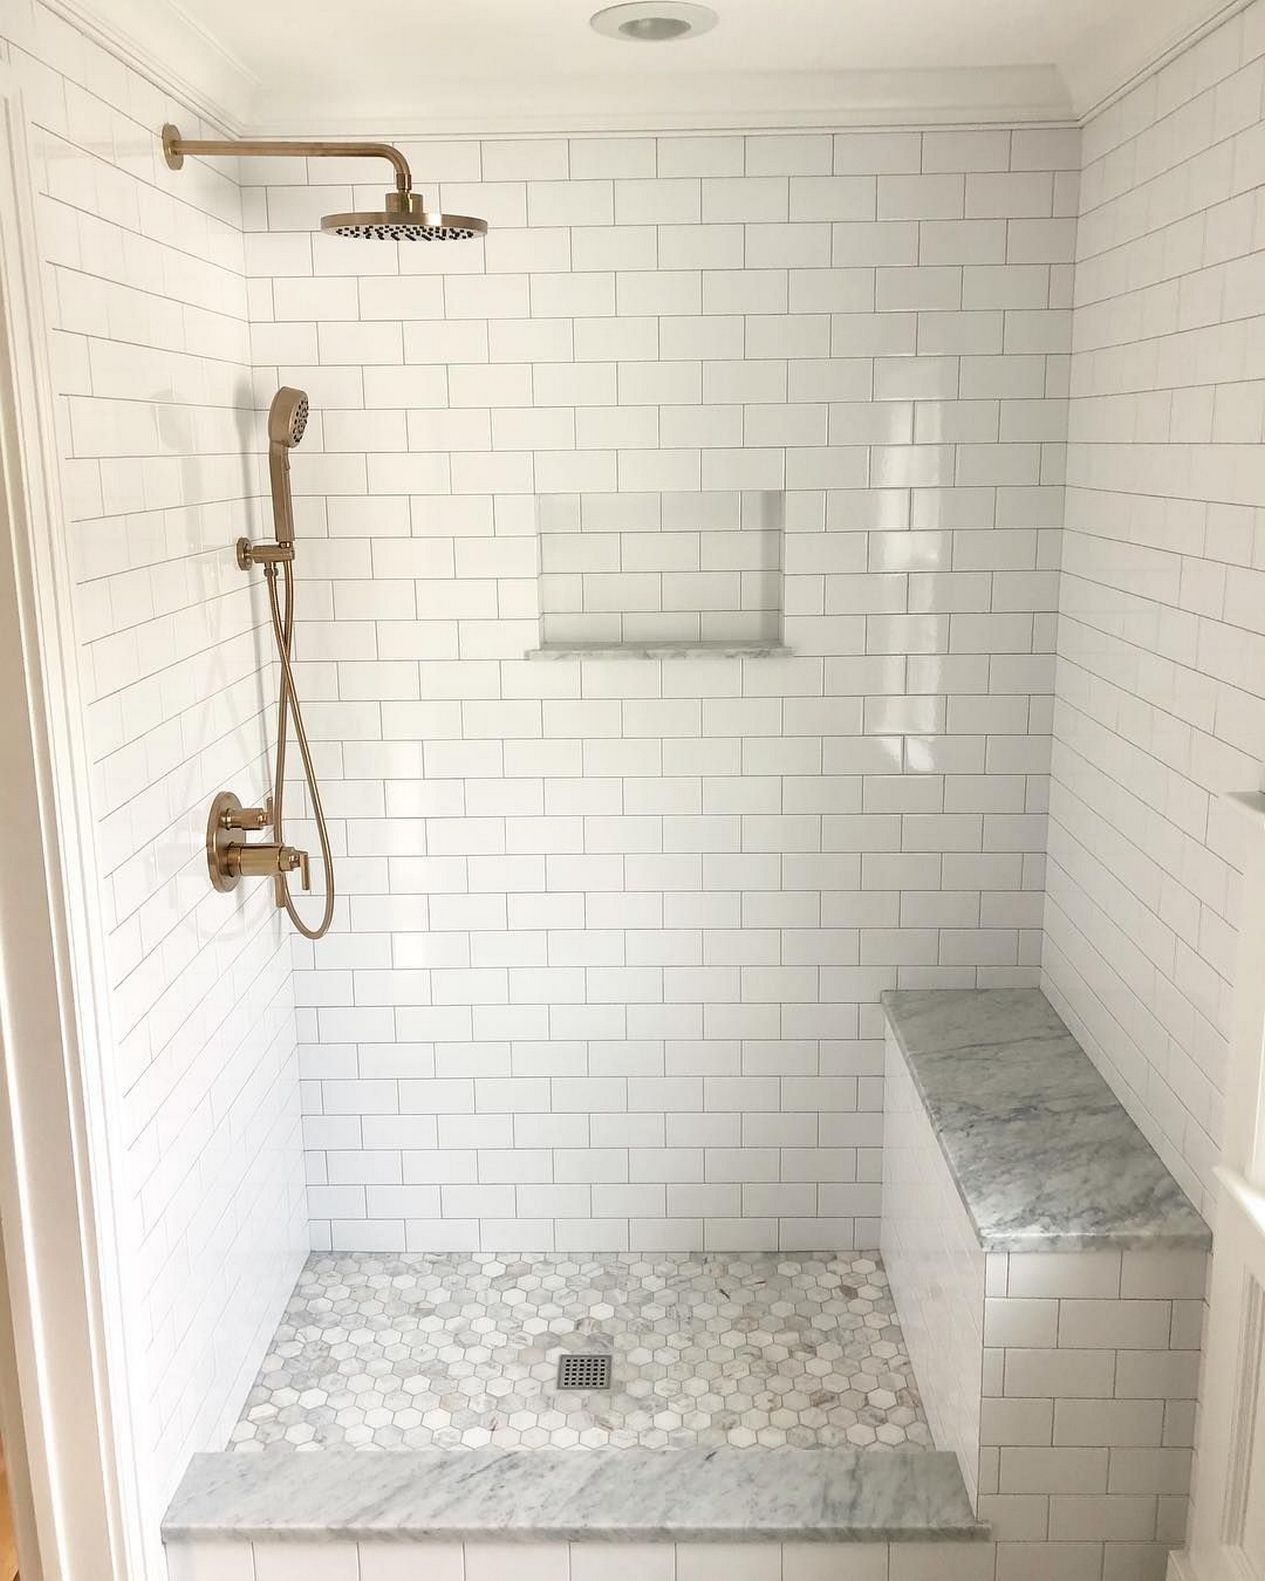 20 Amazing Bathroom Design Ideas Here Are 7 Key Guides To Getting A Walkin Shower 13 Master Bathroom Shower Shower Remodel Bathroom Remodel Shower